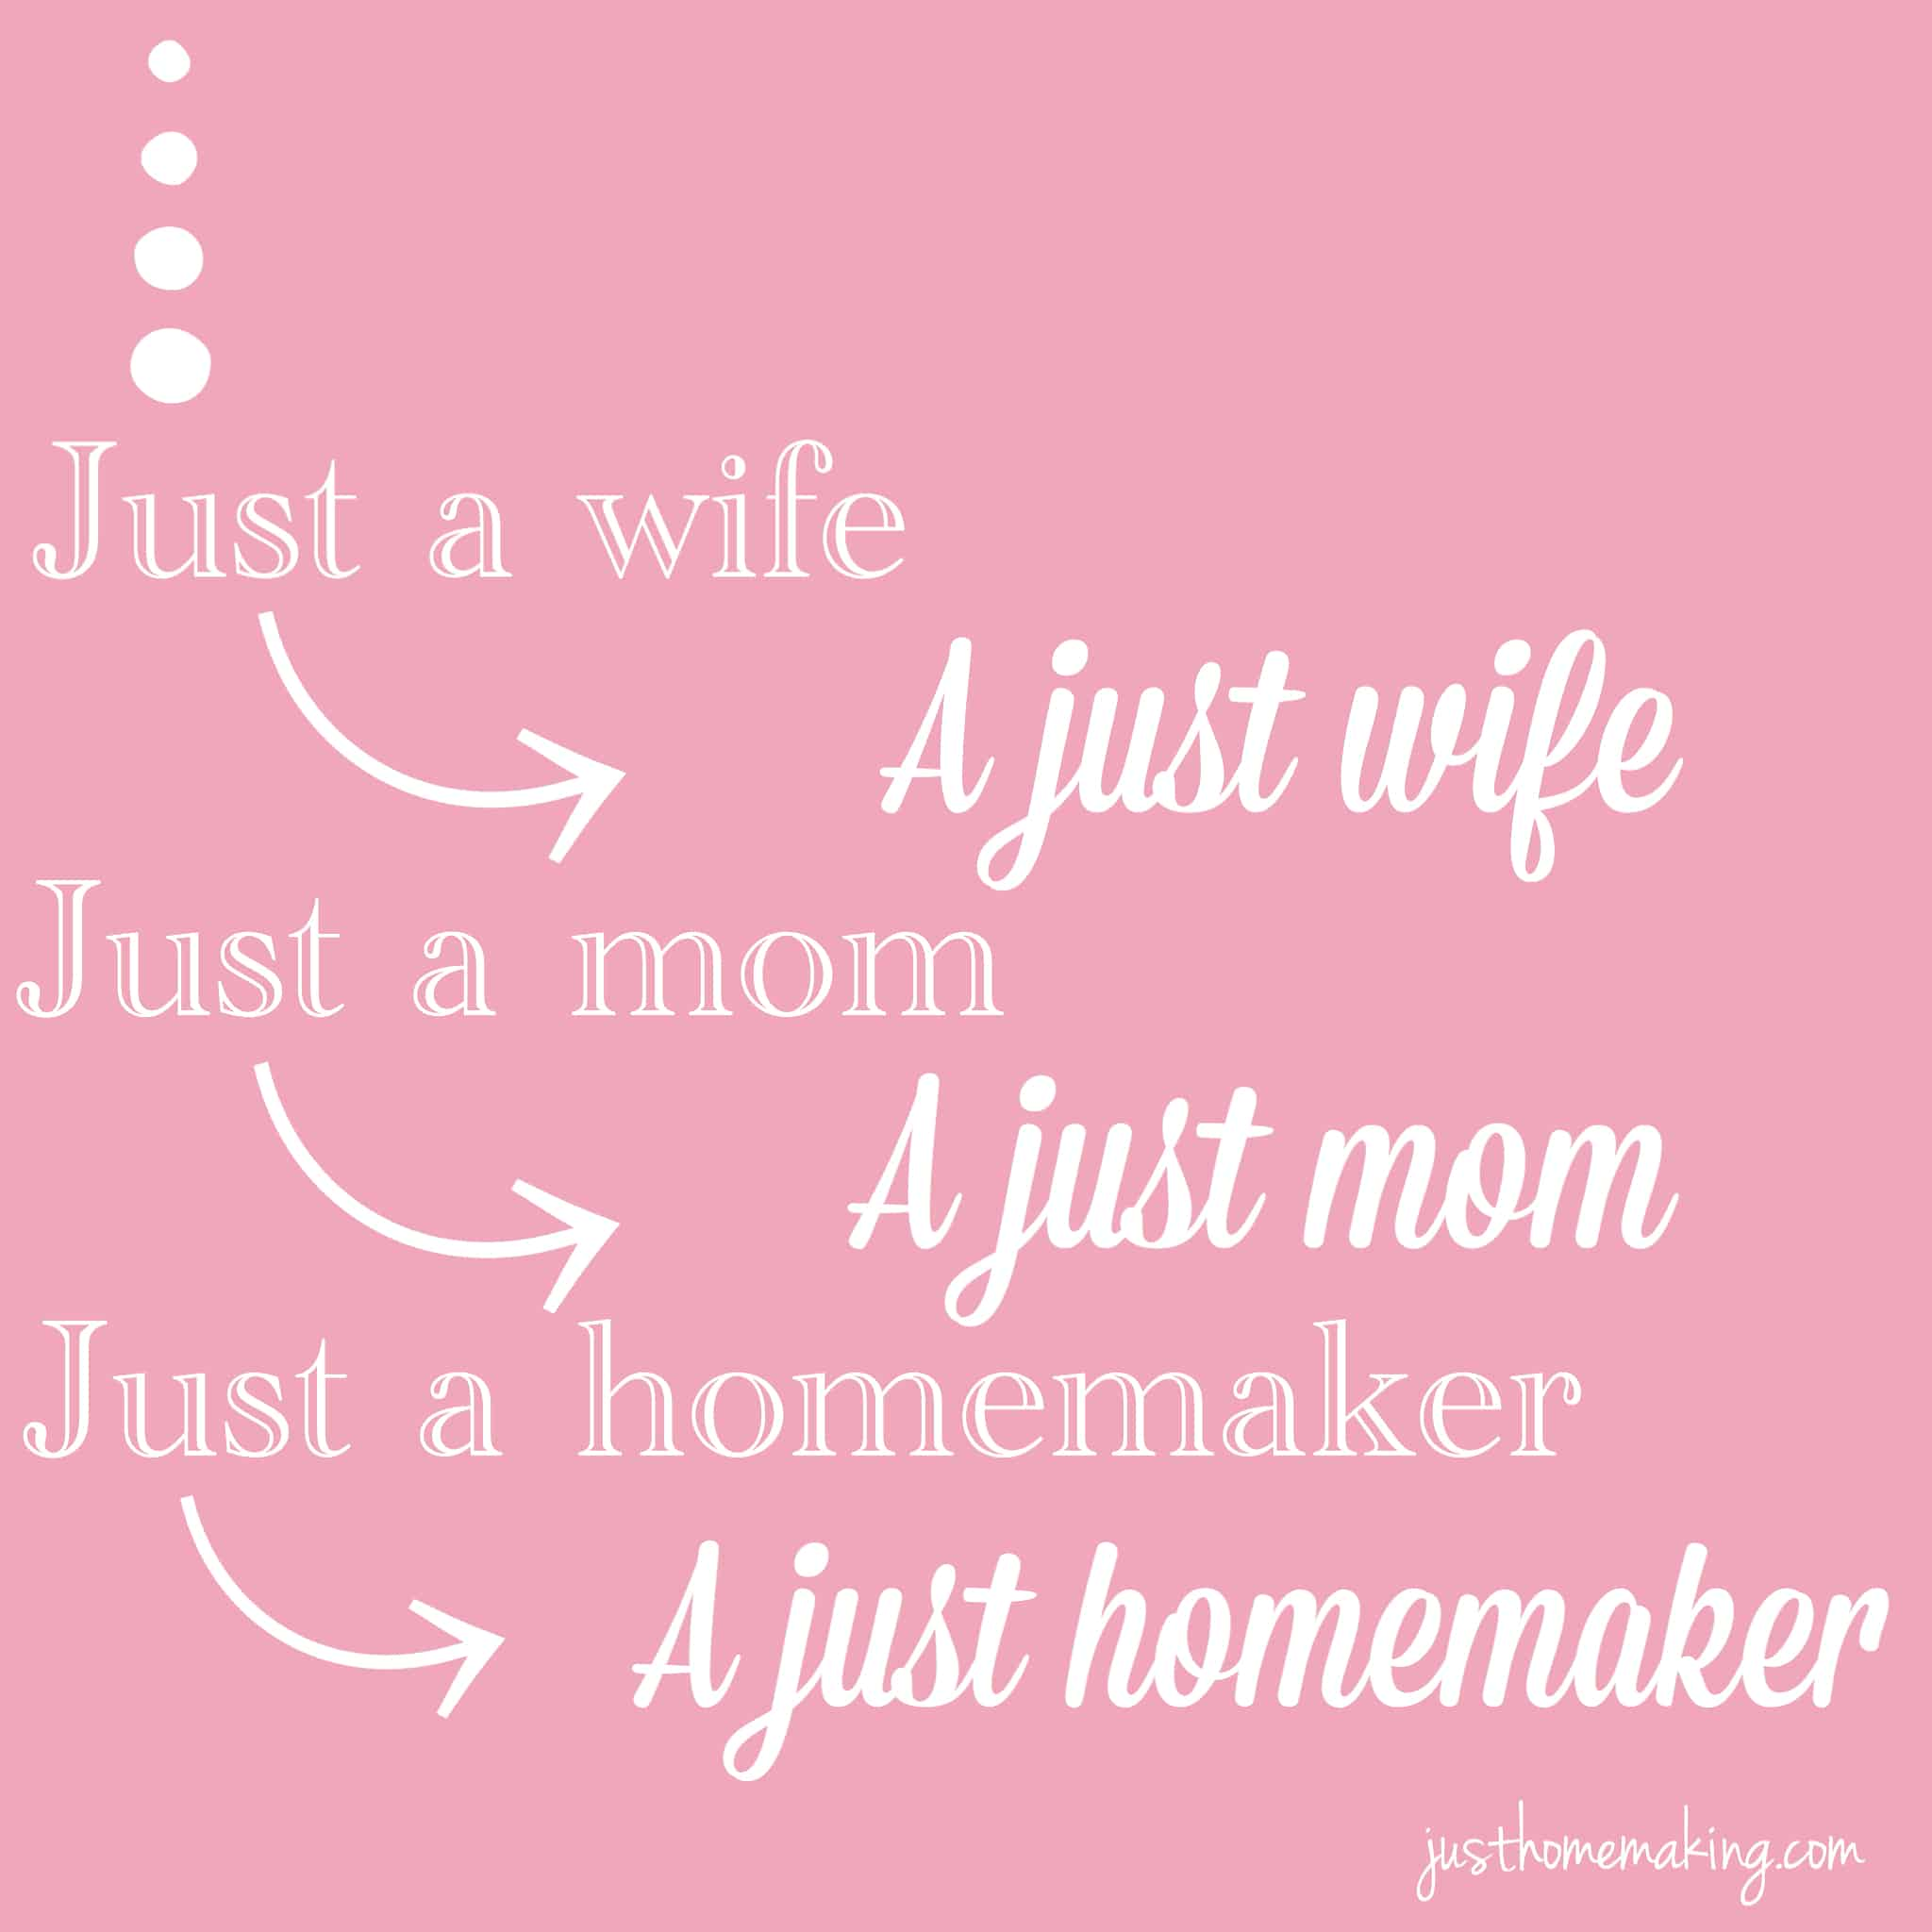 Just a wife